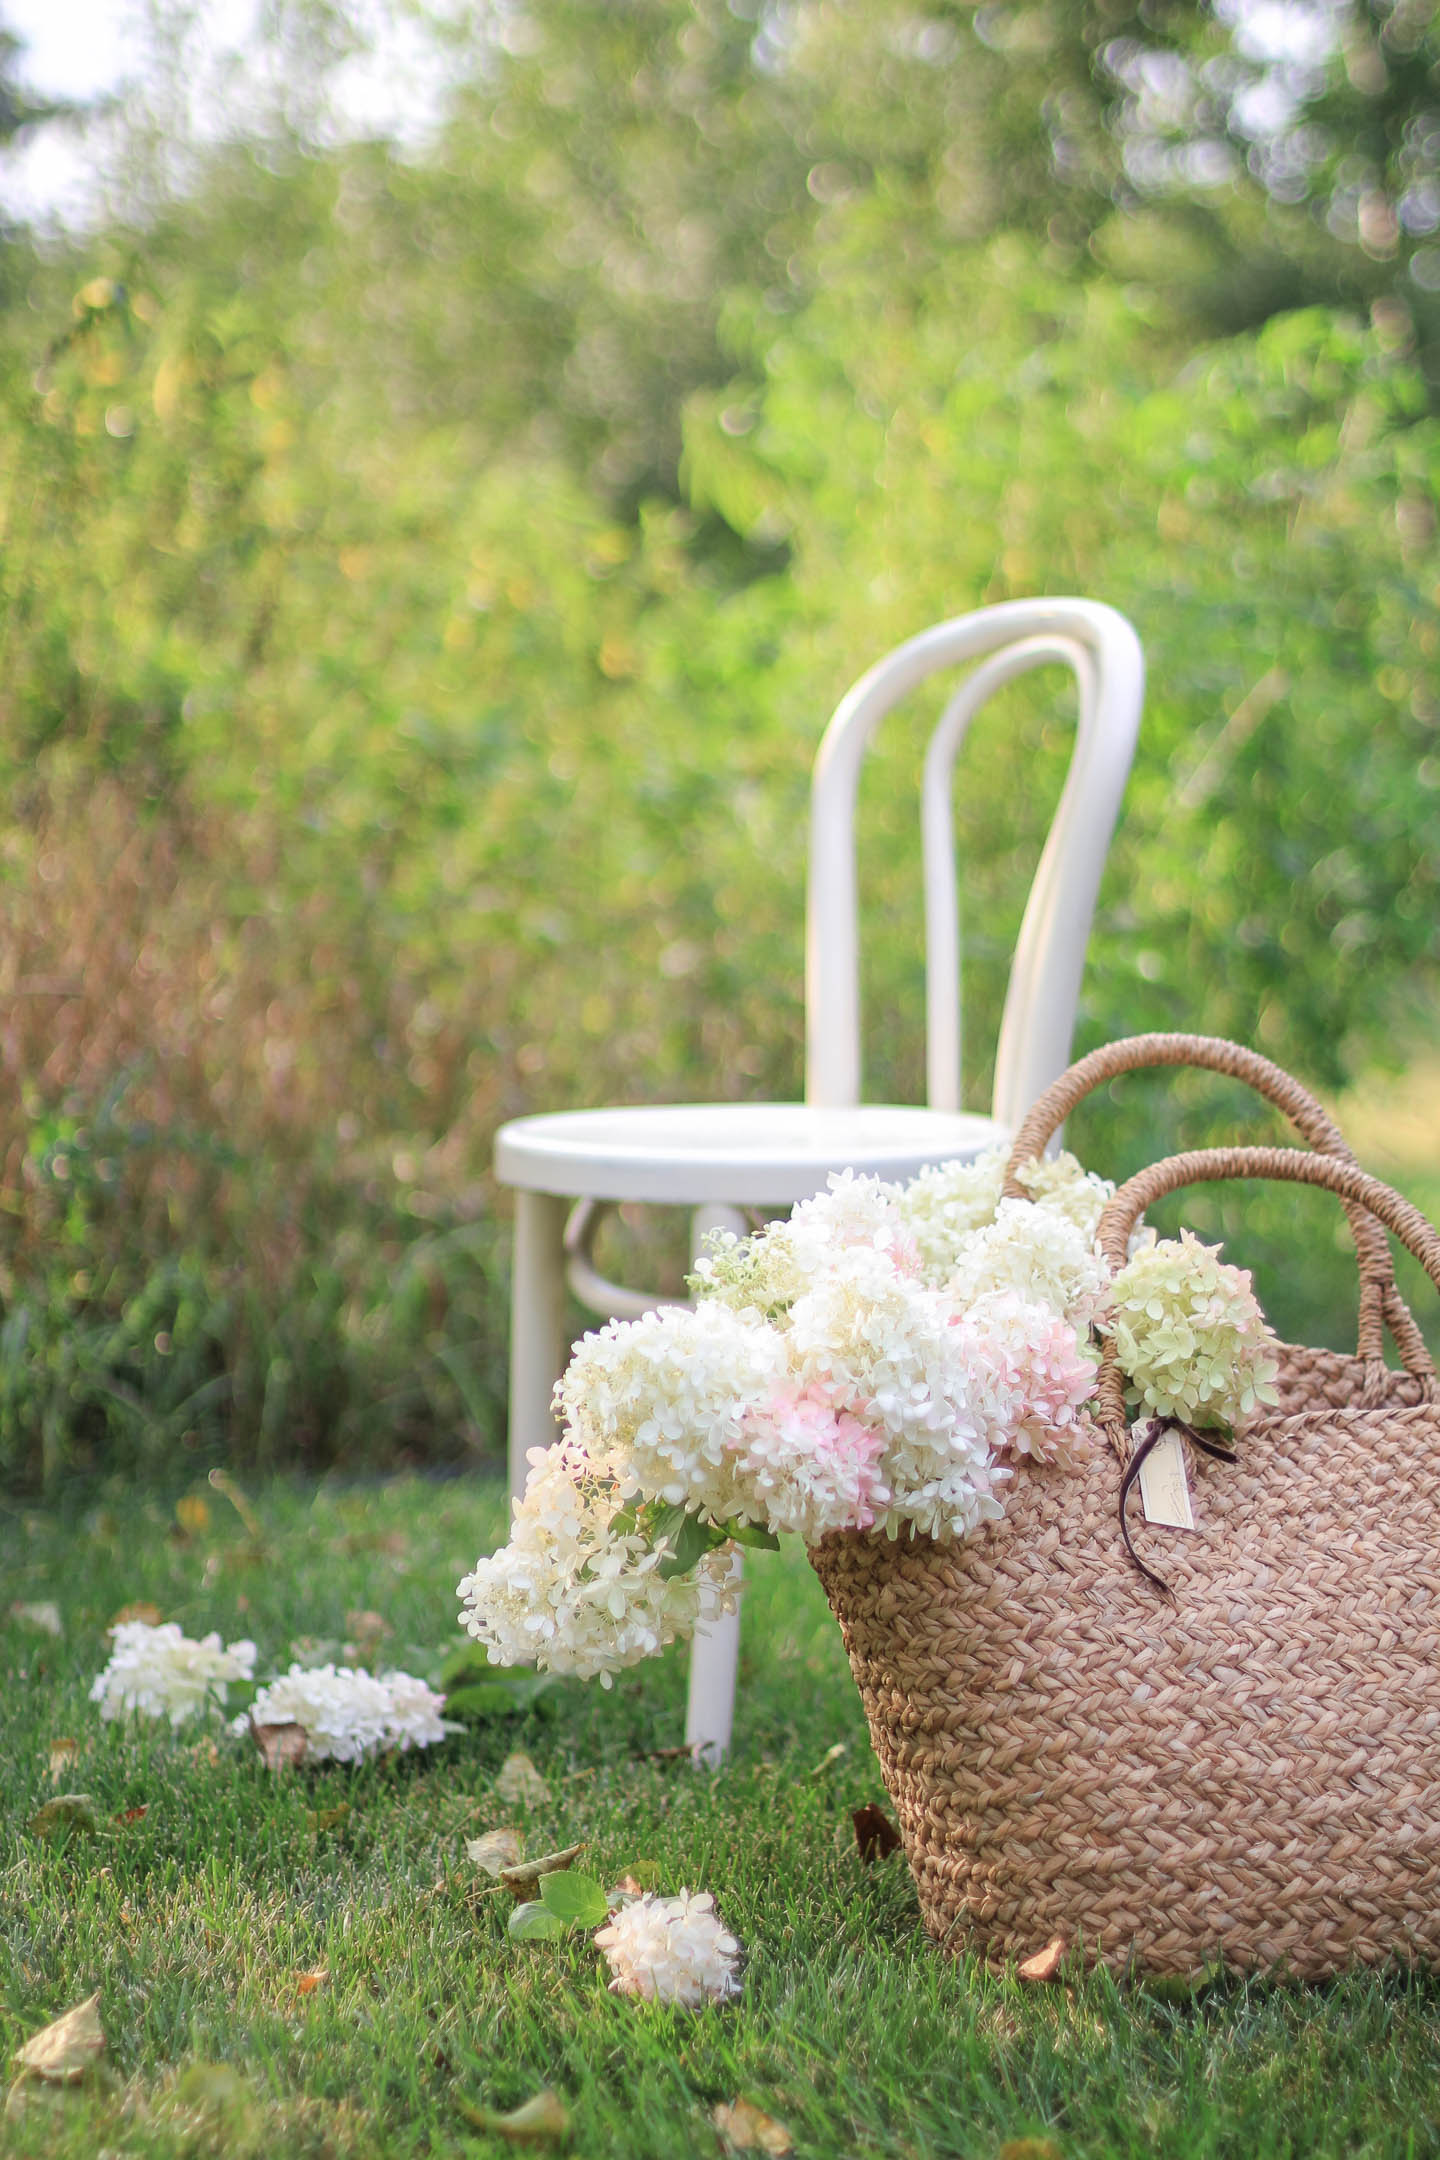 White, pink and green hydrangeas in a woven bag sitting outdoors in the grass.